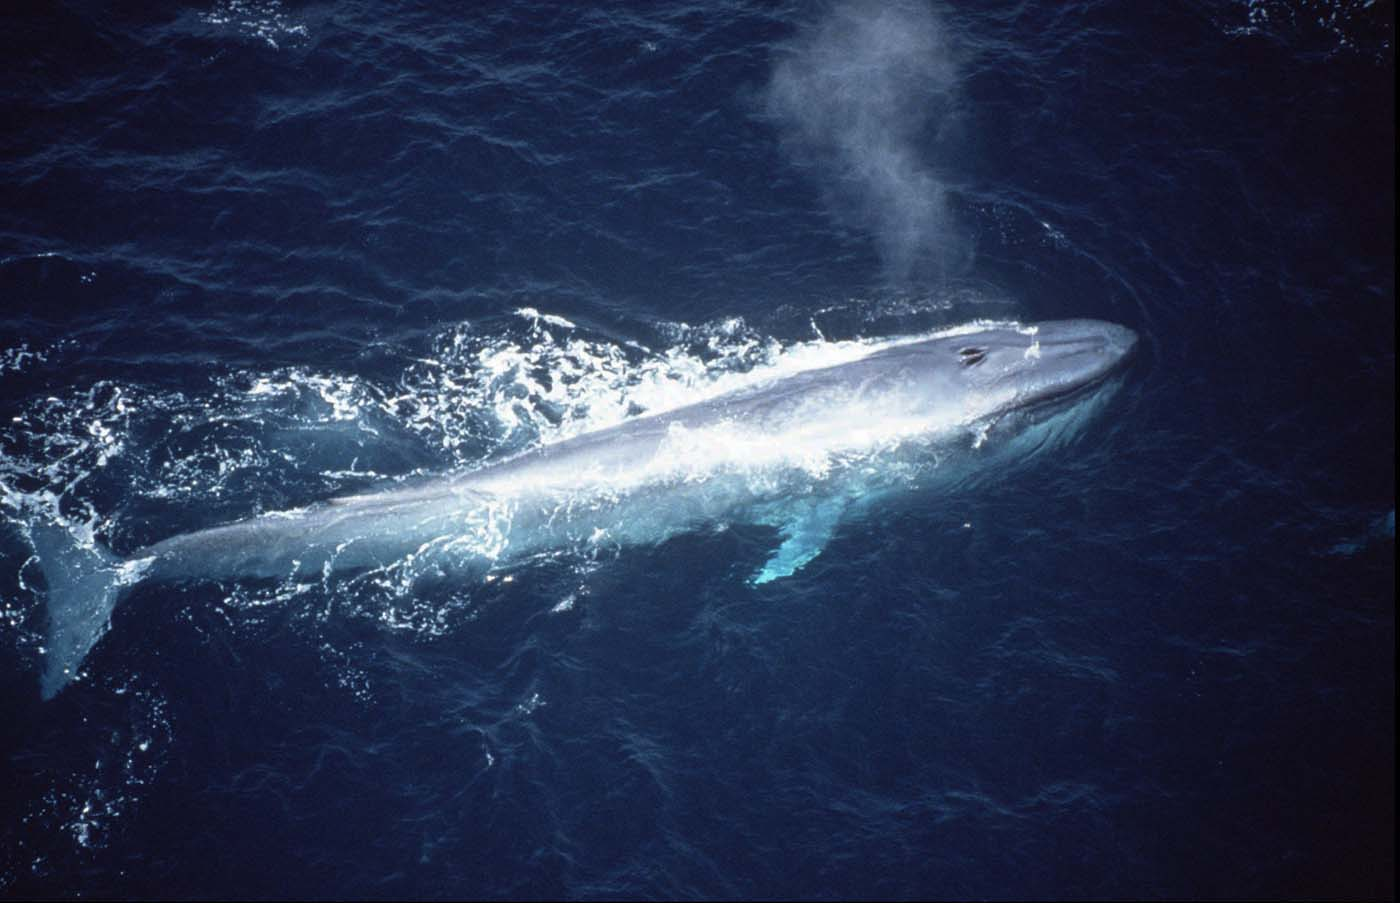 They're over 100 feet long, weigh more than 150 tons, and are surprisingly mysterious and difficult to observe, considering their gigantic size: blue whales. (ABC Television Network)